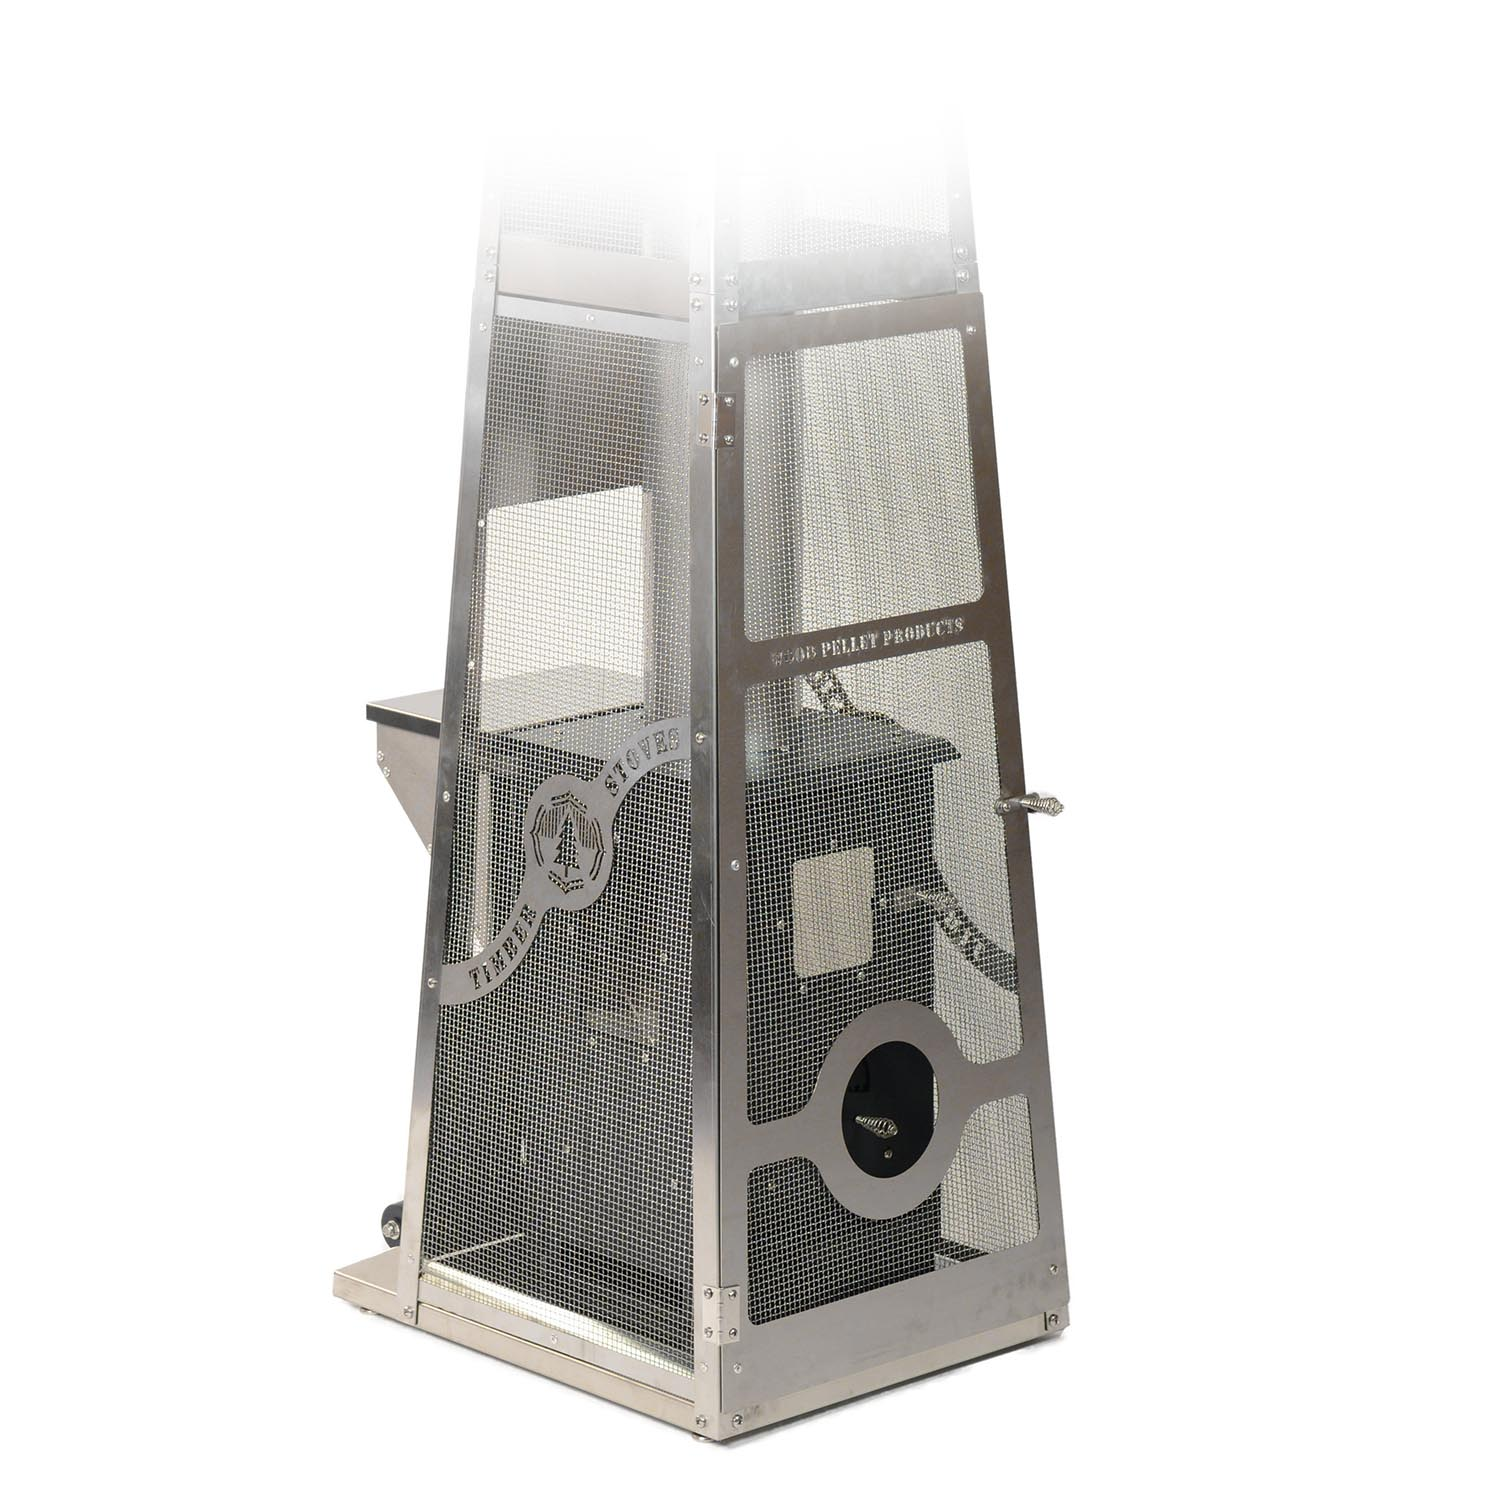 The front view of the Lil' Timber Elite Patio Heater with the door open